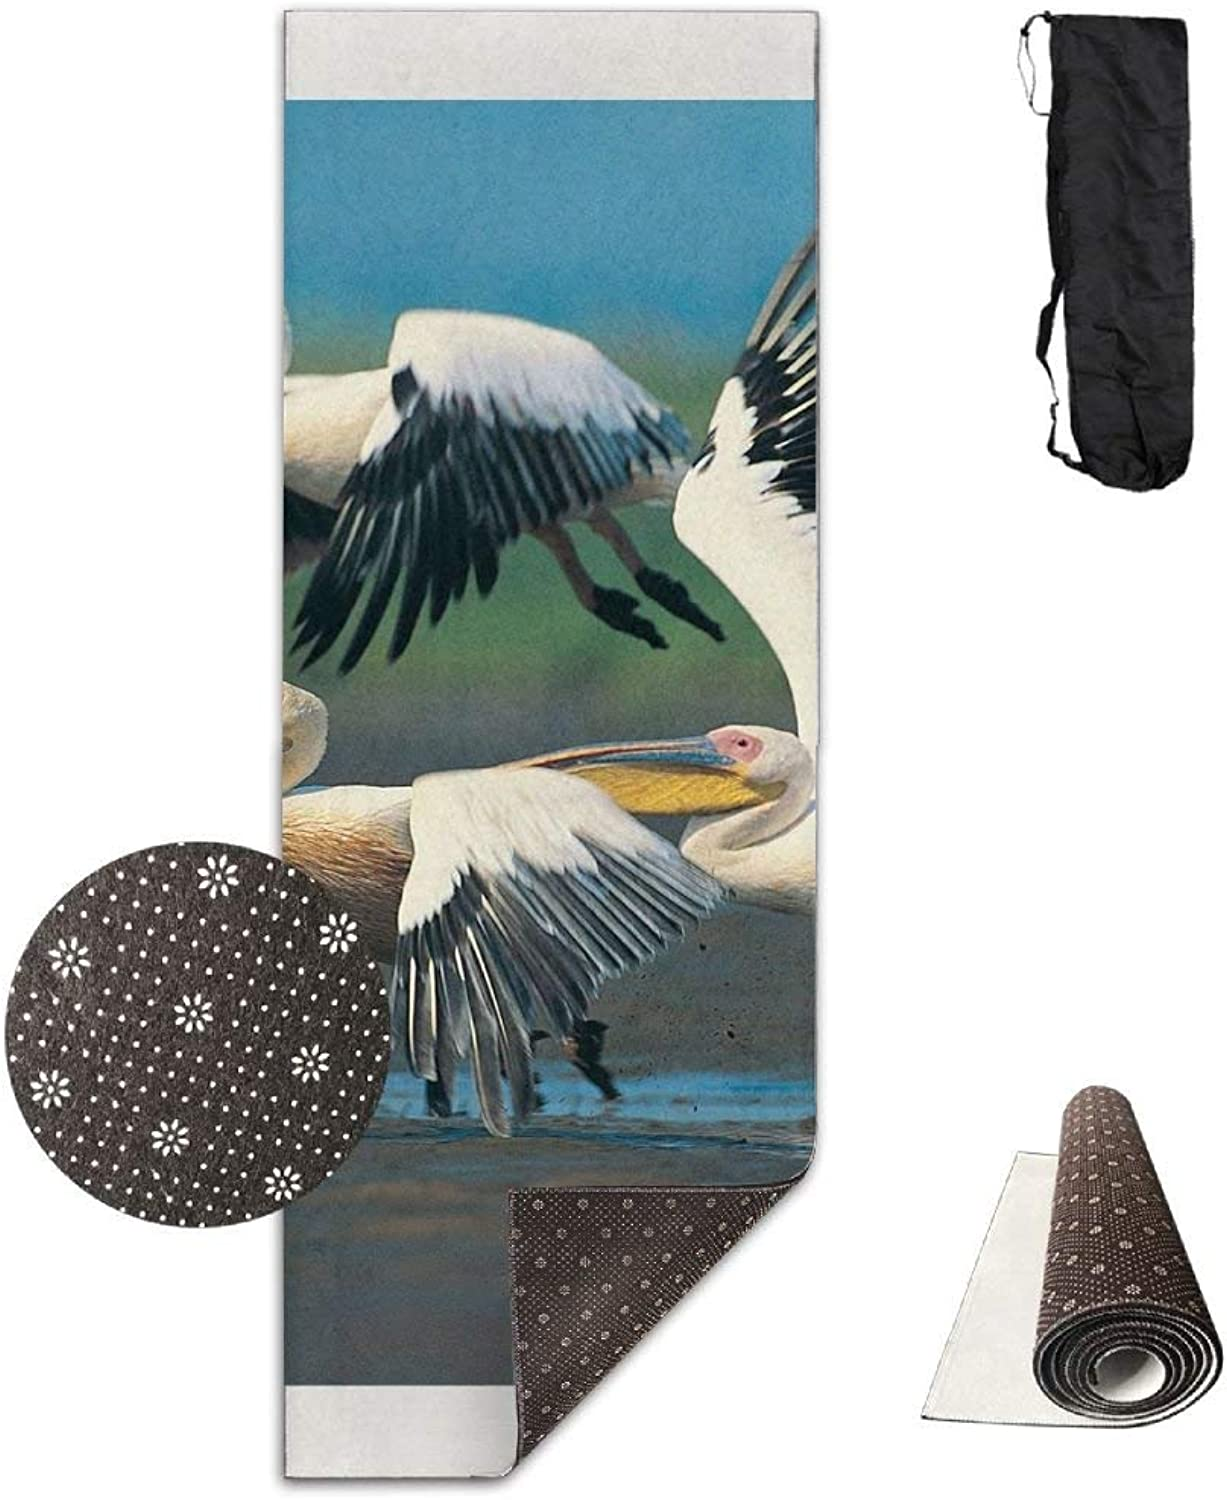 Cool Ciconiiformes Birds Painting Deluxe Yoga Mat Aerobic Exercise Pilates